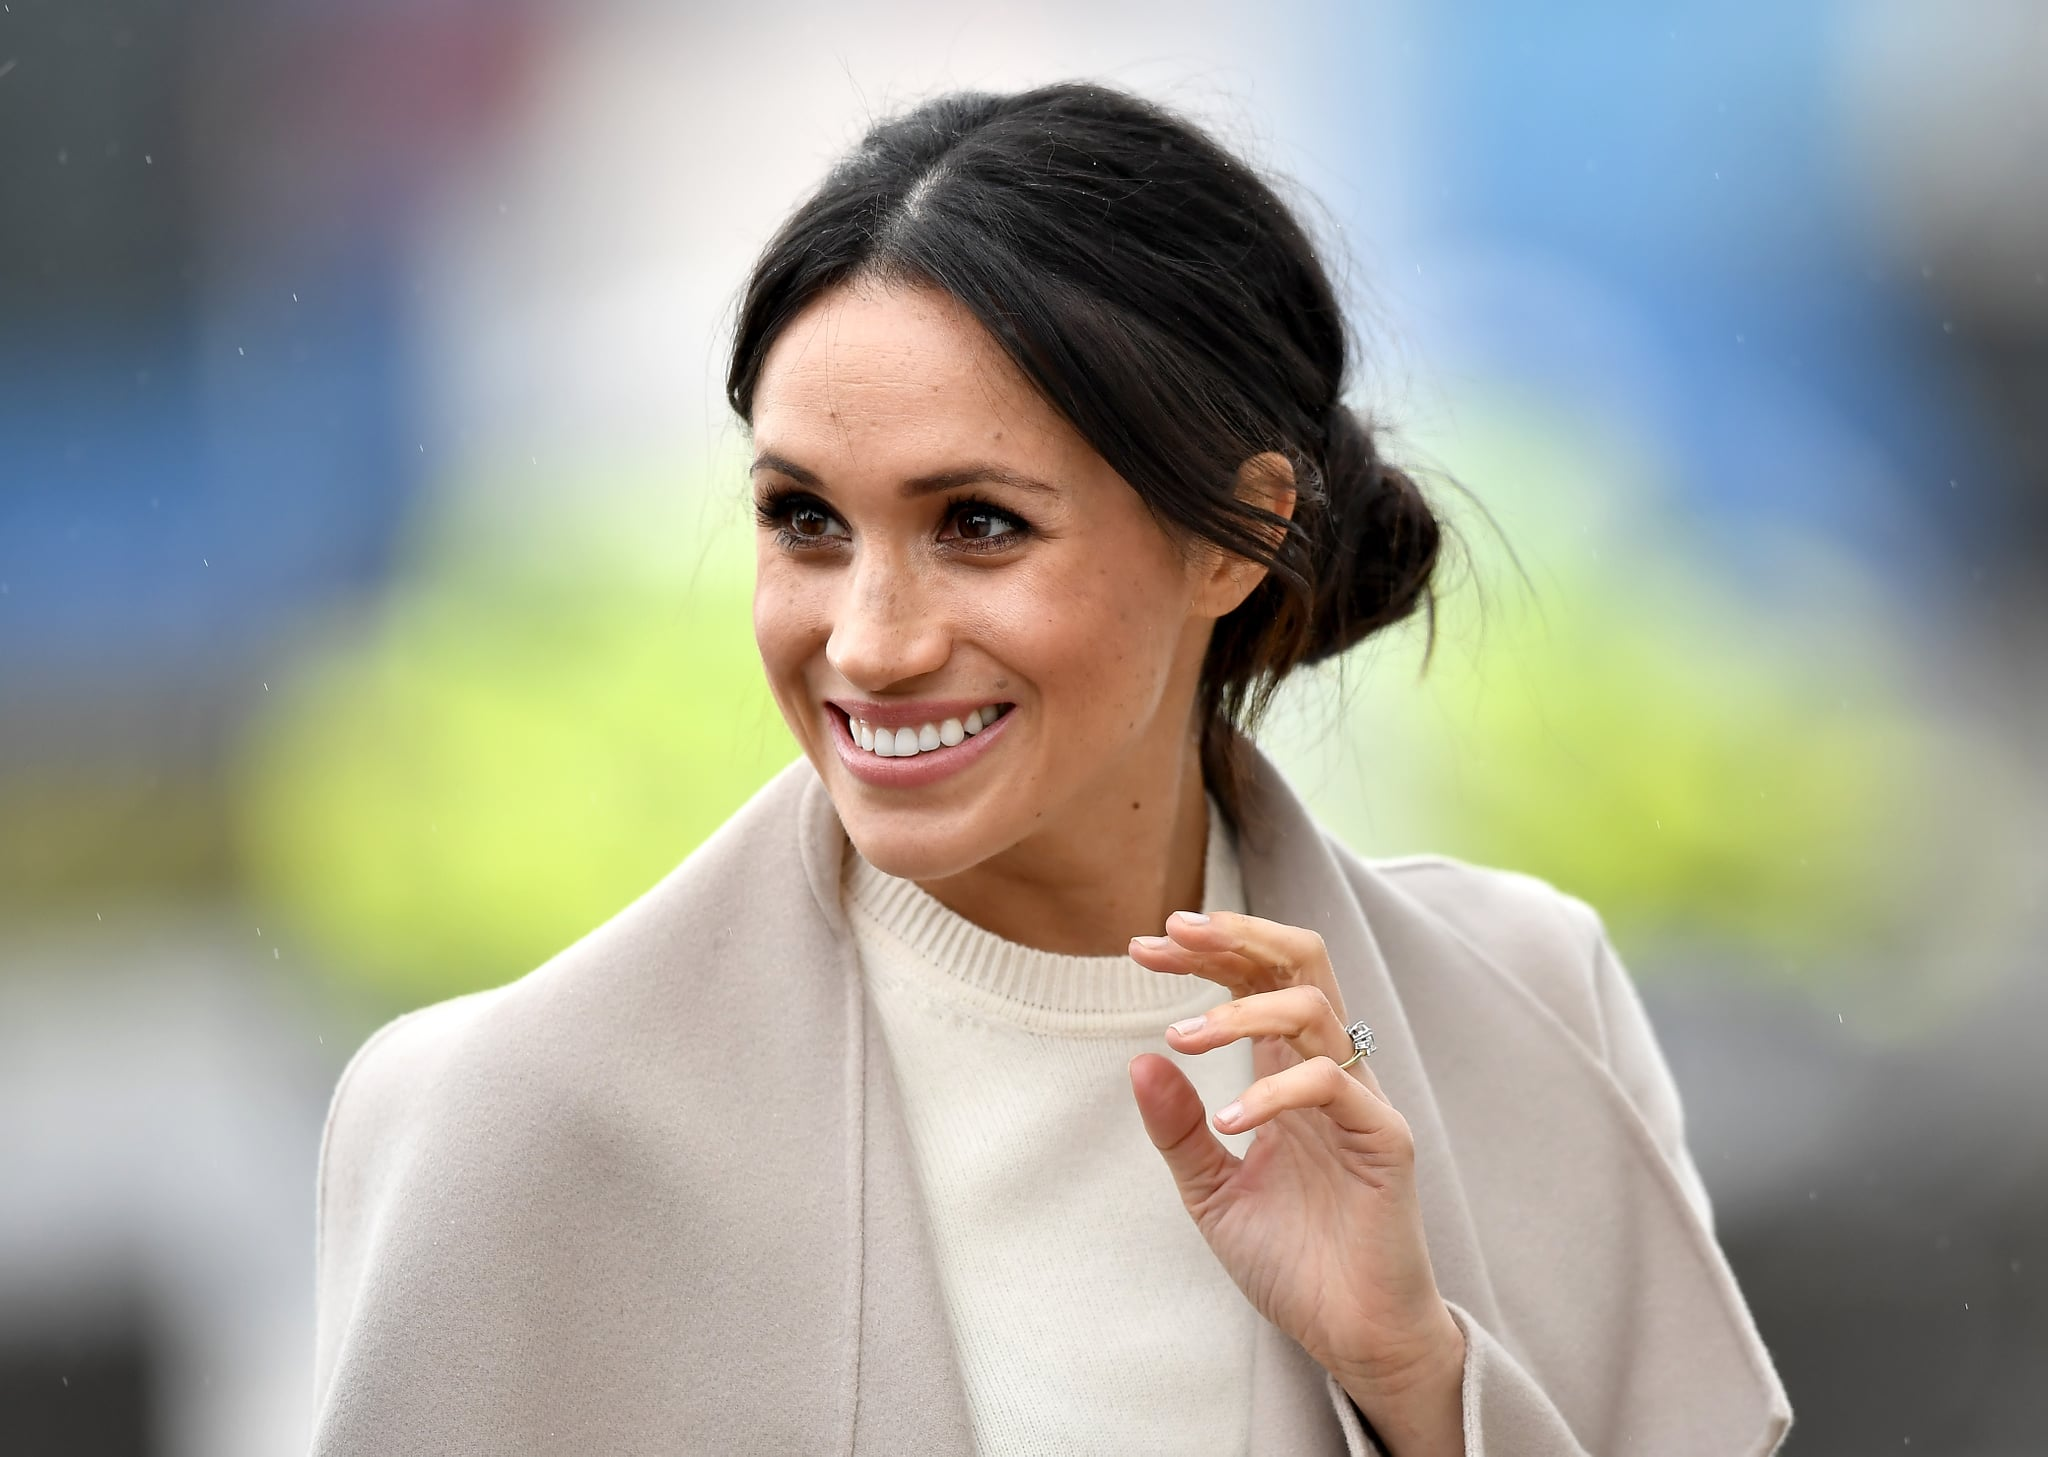 BELFAST, UNITED KINGDOM - MARCH 23:  Meghan Markle is seen ahead of her visit to the iconic Titanic Belfast during her trip with Prince Harry to Northern Ireland on March 23, 2018 in Belfast, Northern Ireland, United Kingdom.  (Photo by Charles McQuillan/Getty Images)